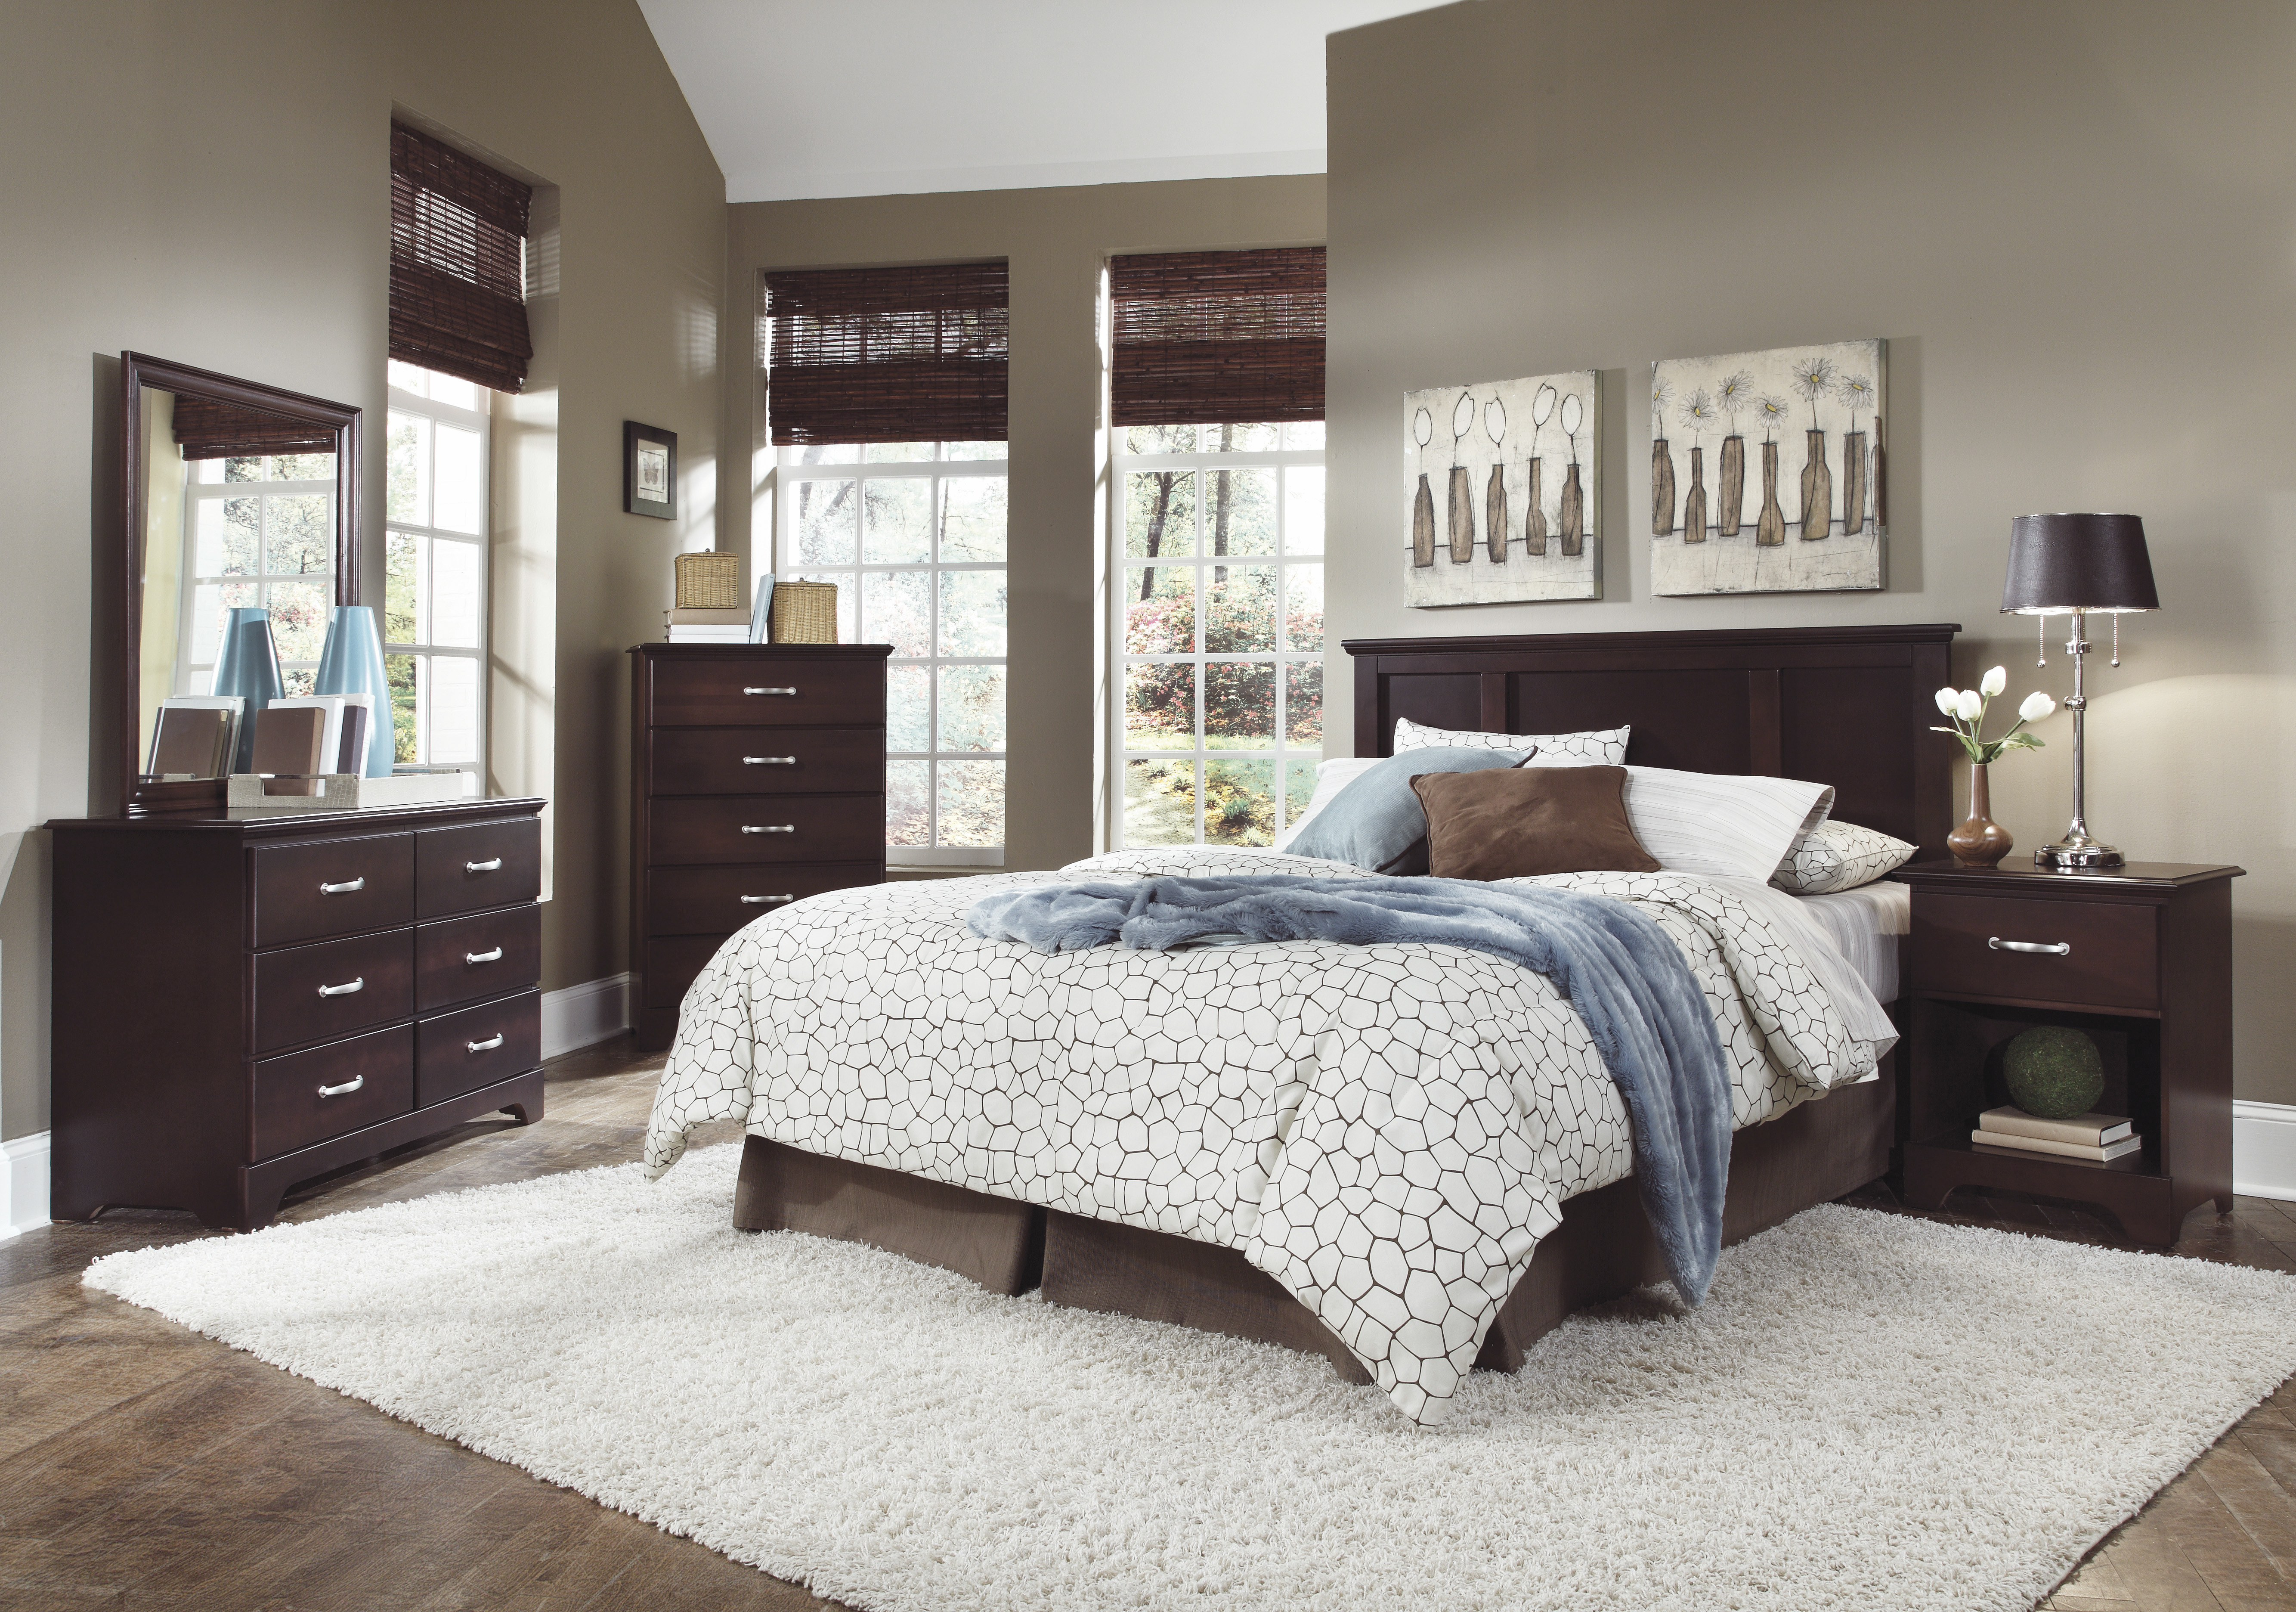 Bedroom Furniture Wilmington Nc Furniture Store Wilmington Ncfurniture Rental Wilmington Nc